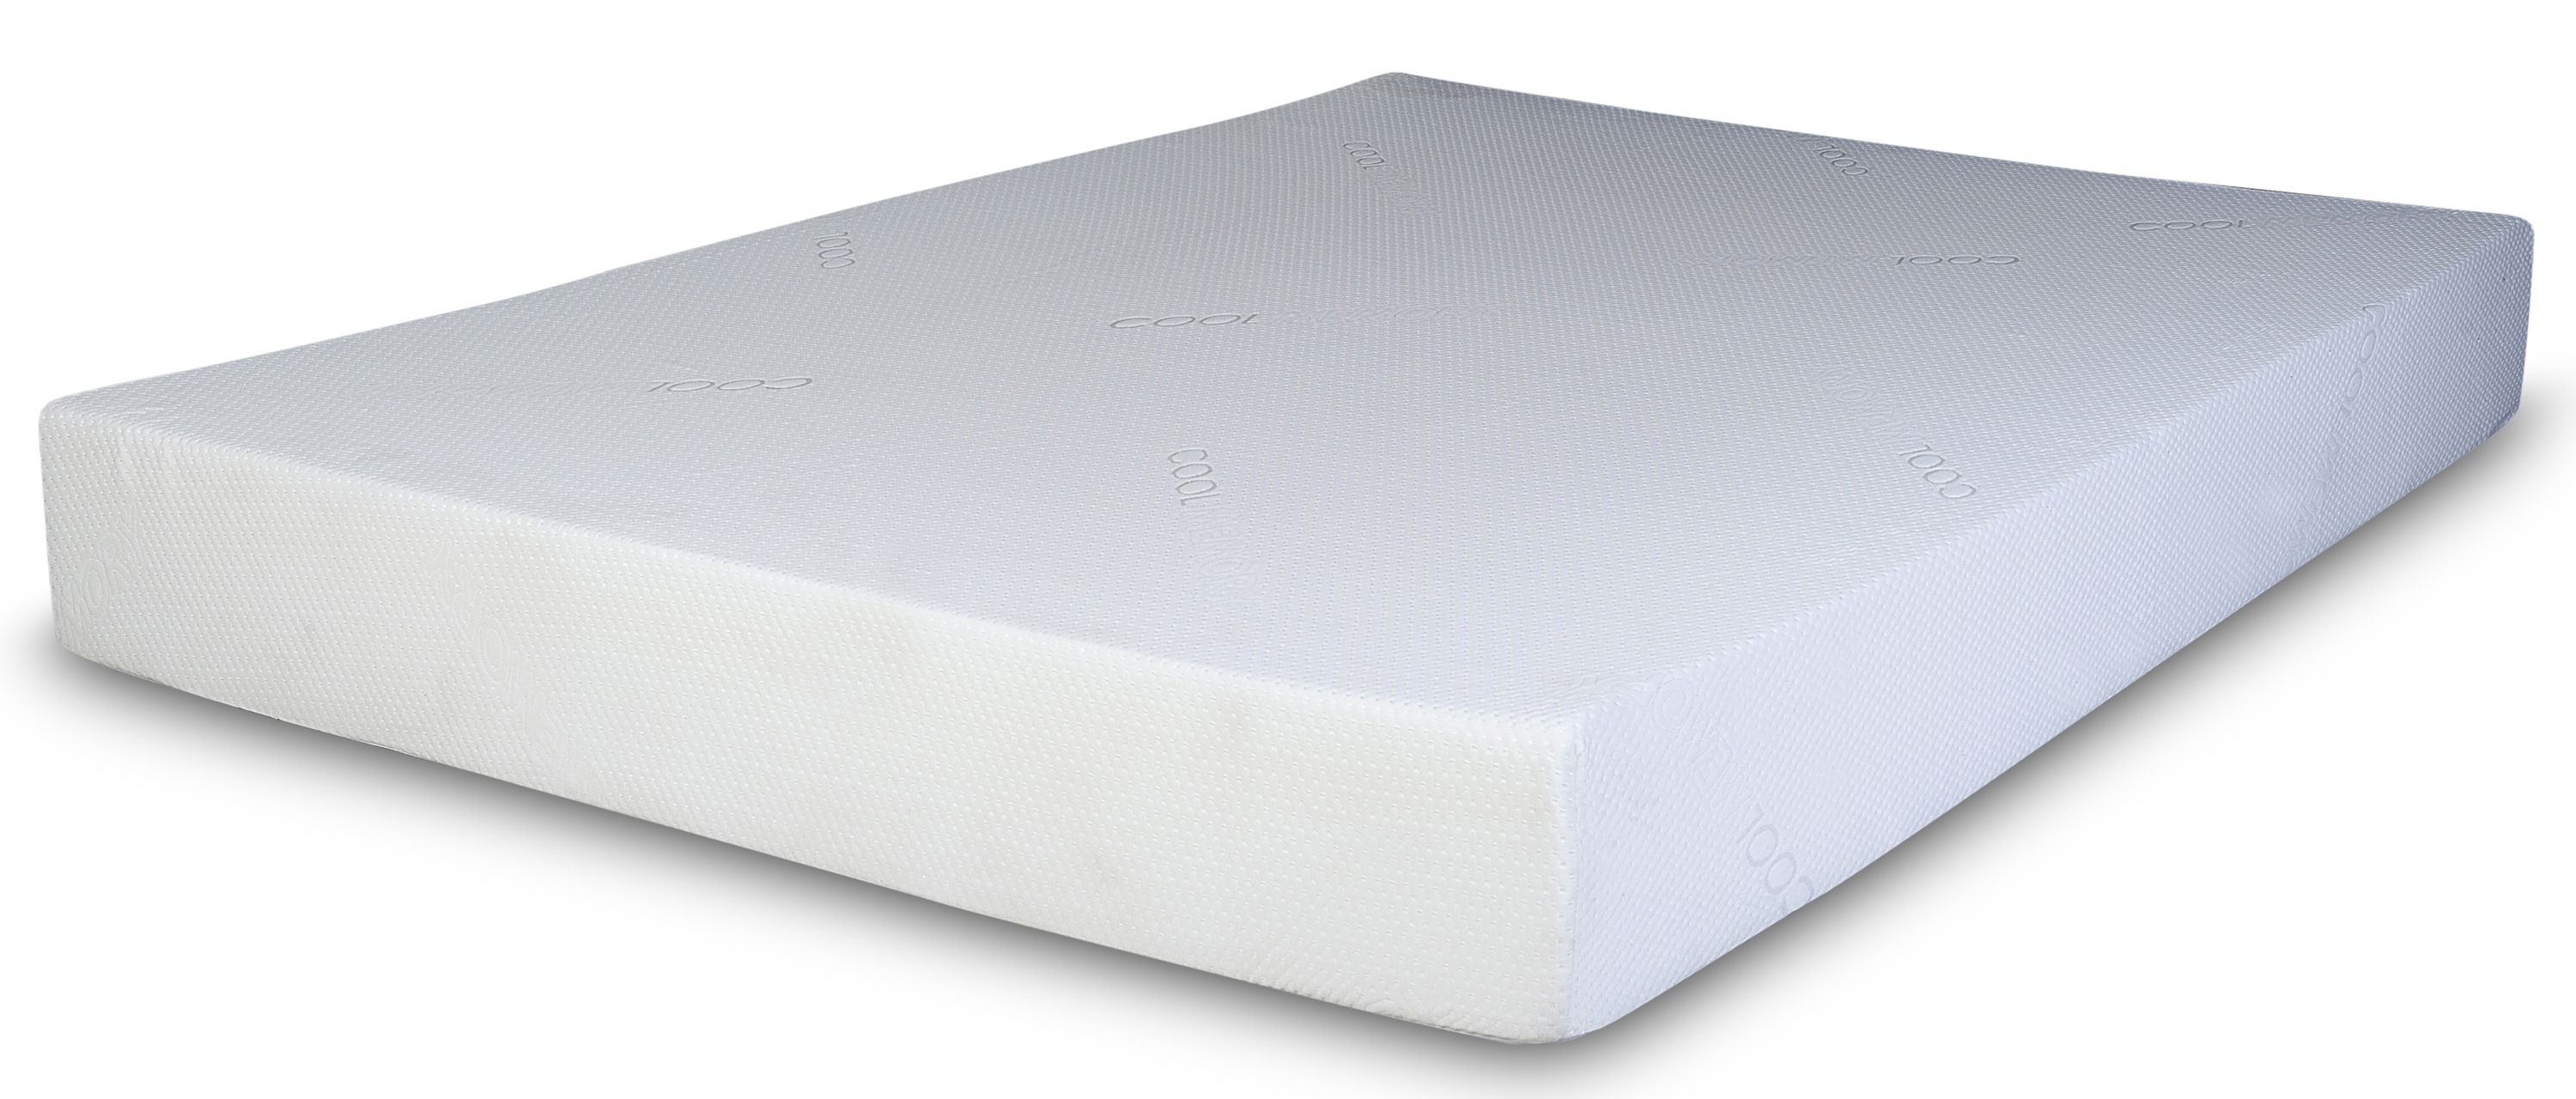 Memory foam ortho king mattress pillows Memory foam king size mattress